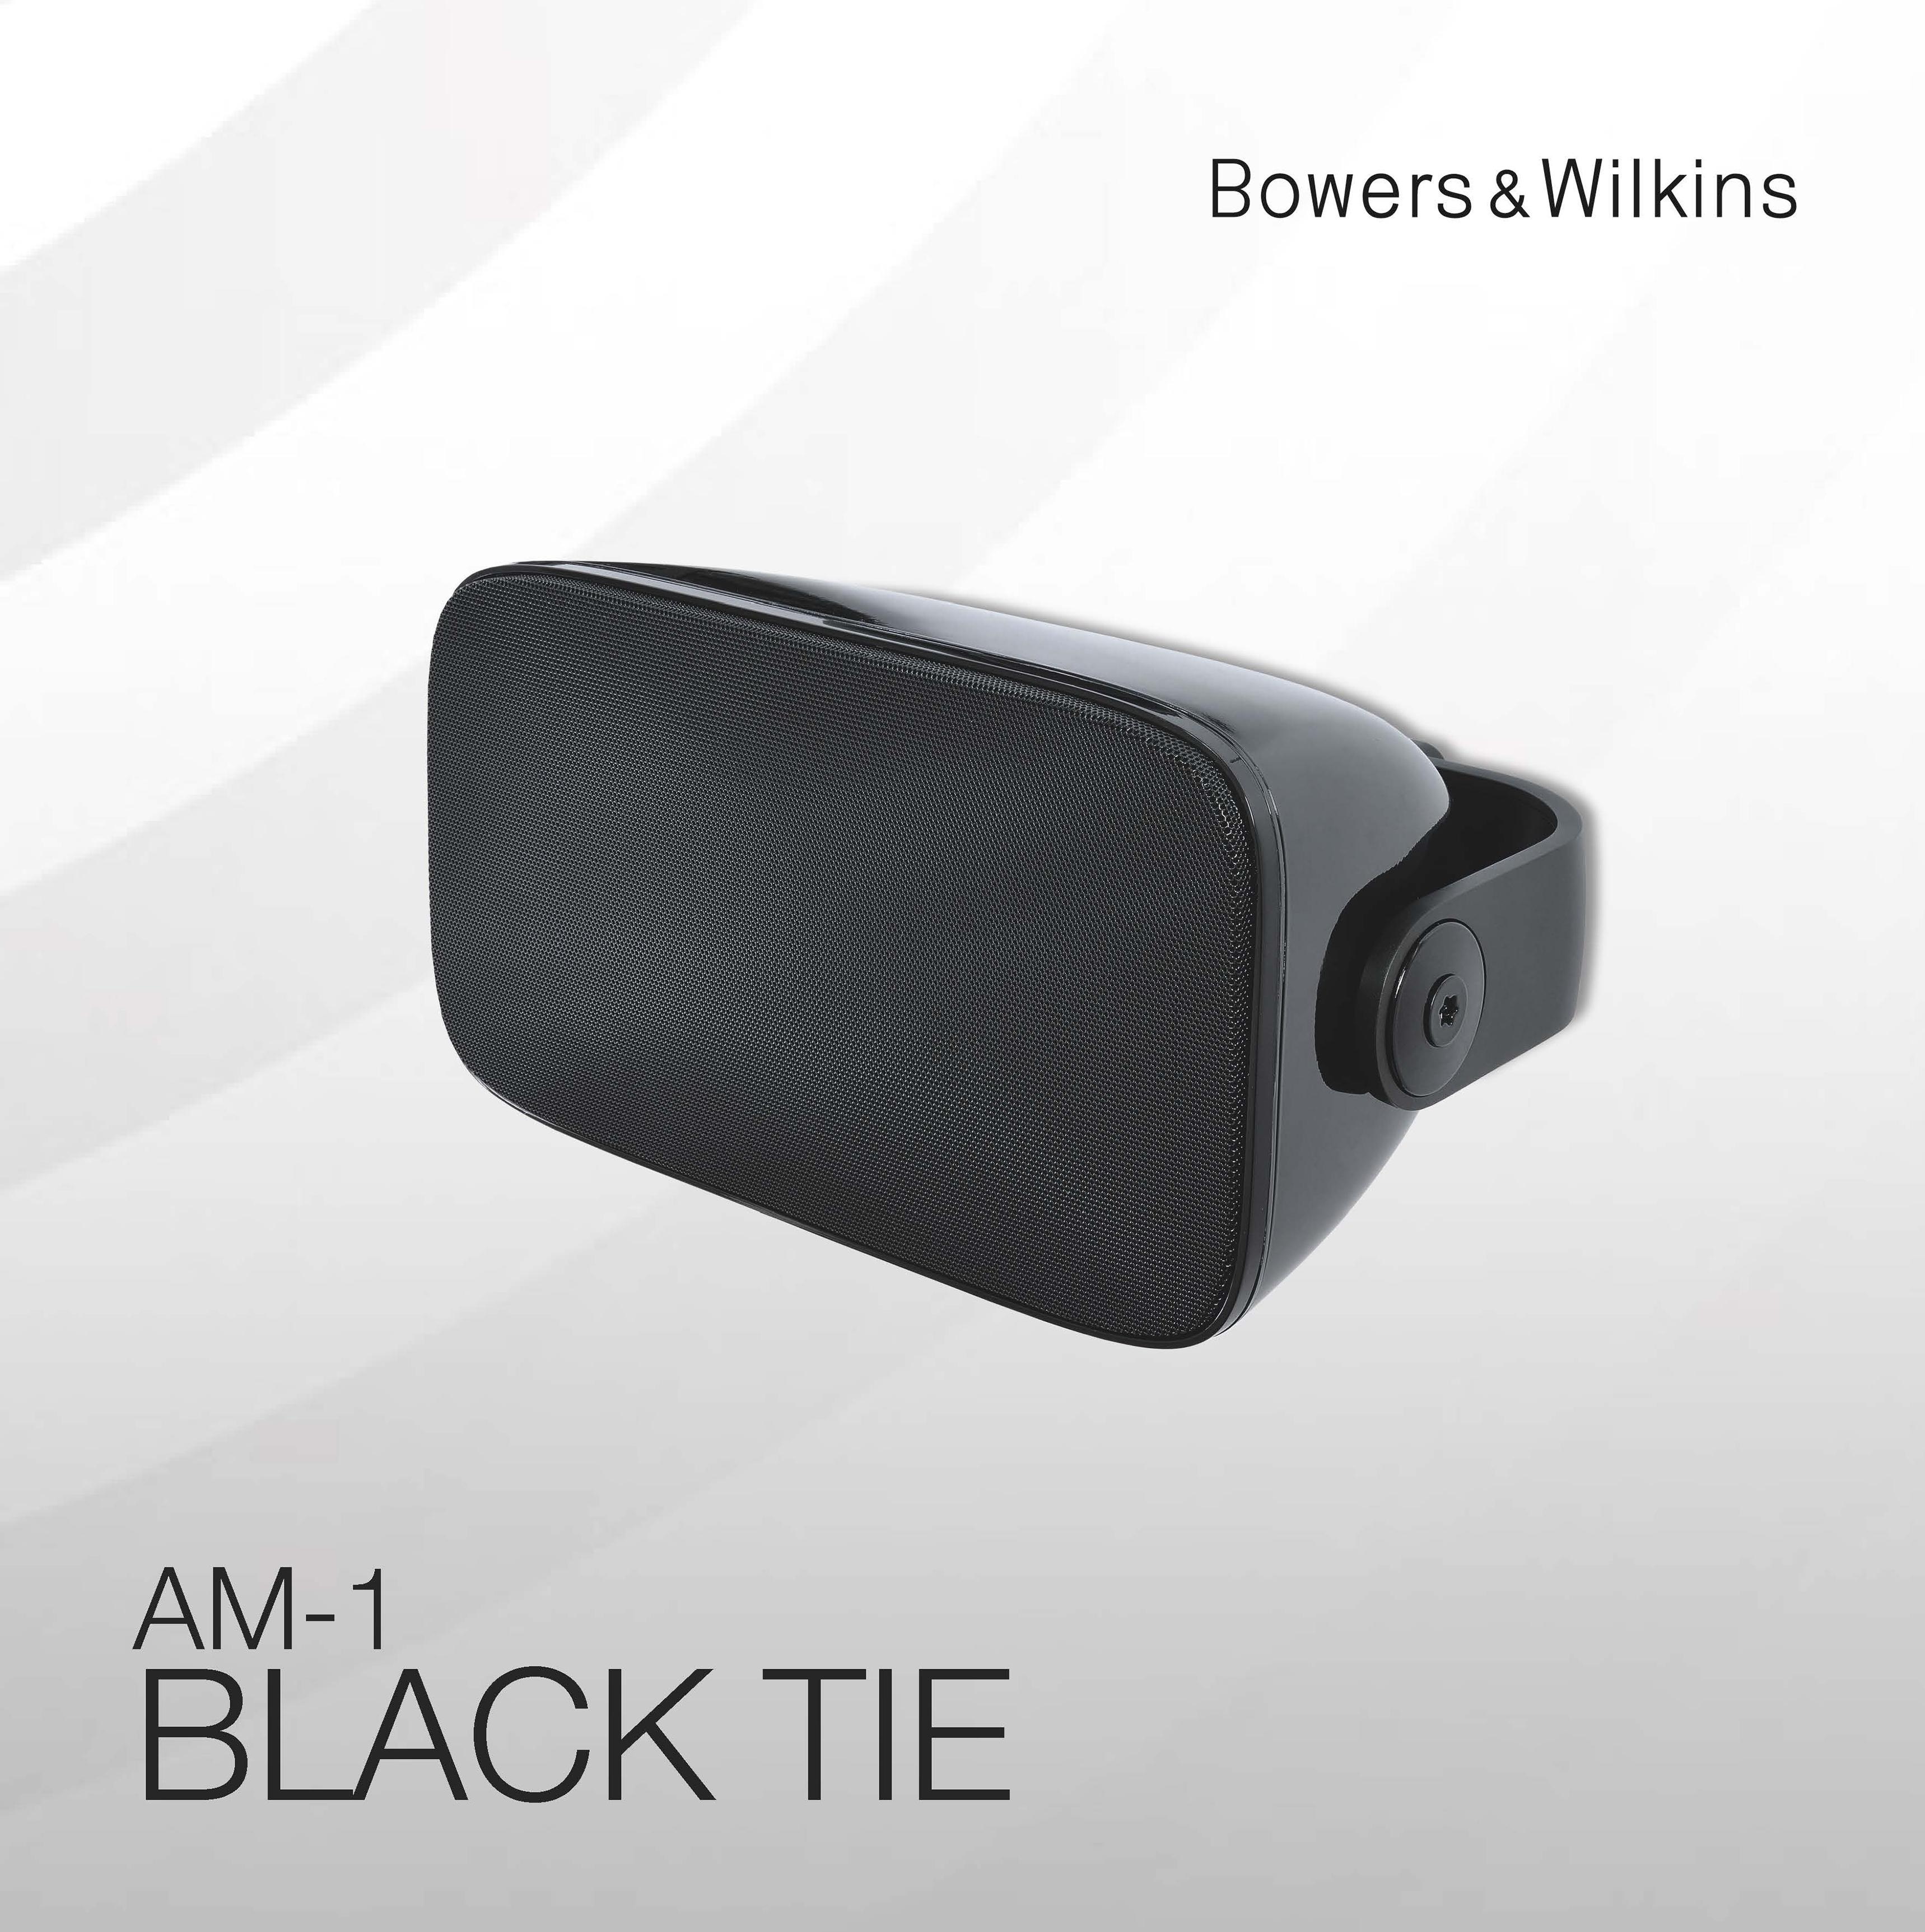 Bowers & Wilkins speaker design